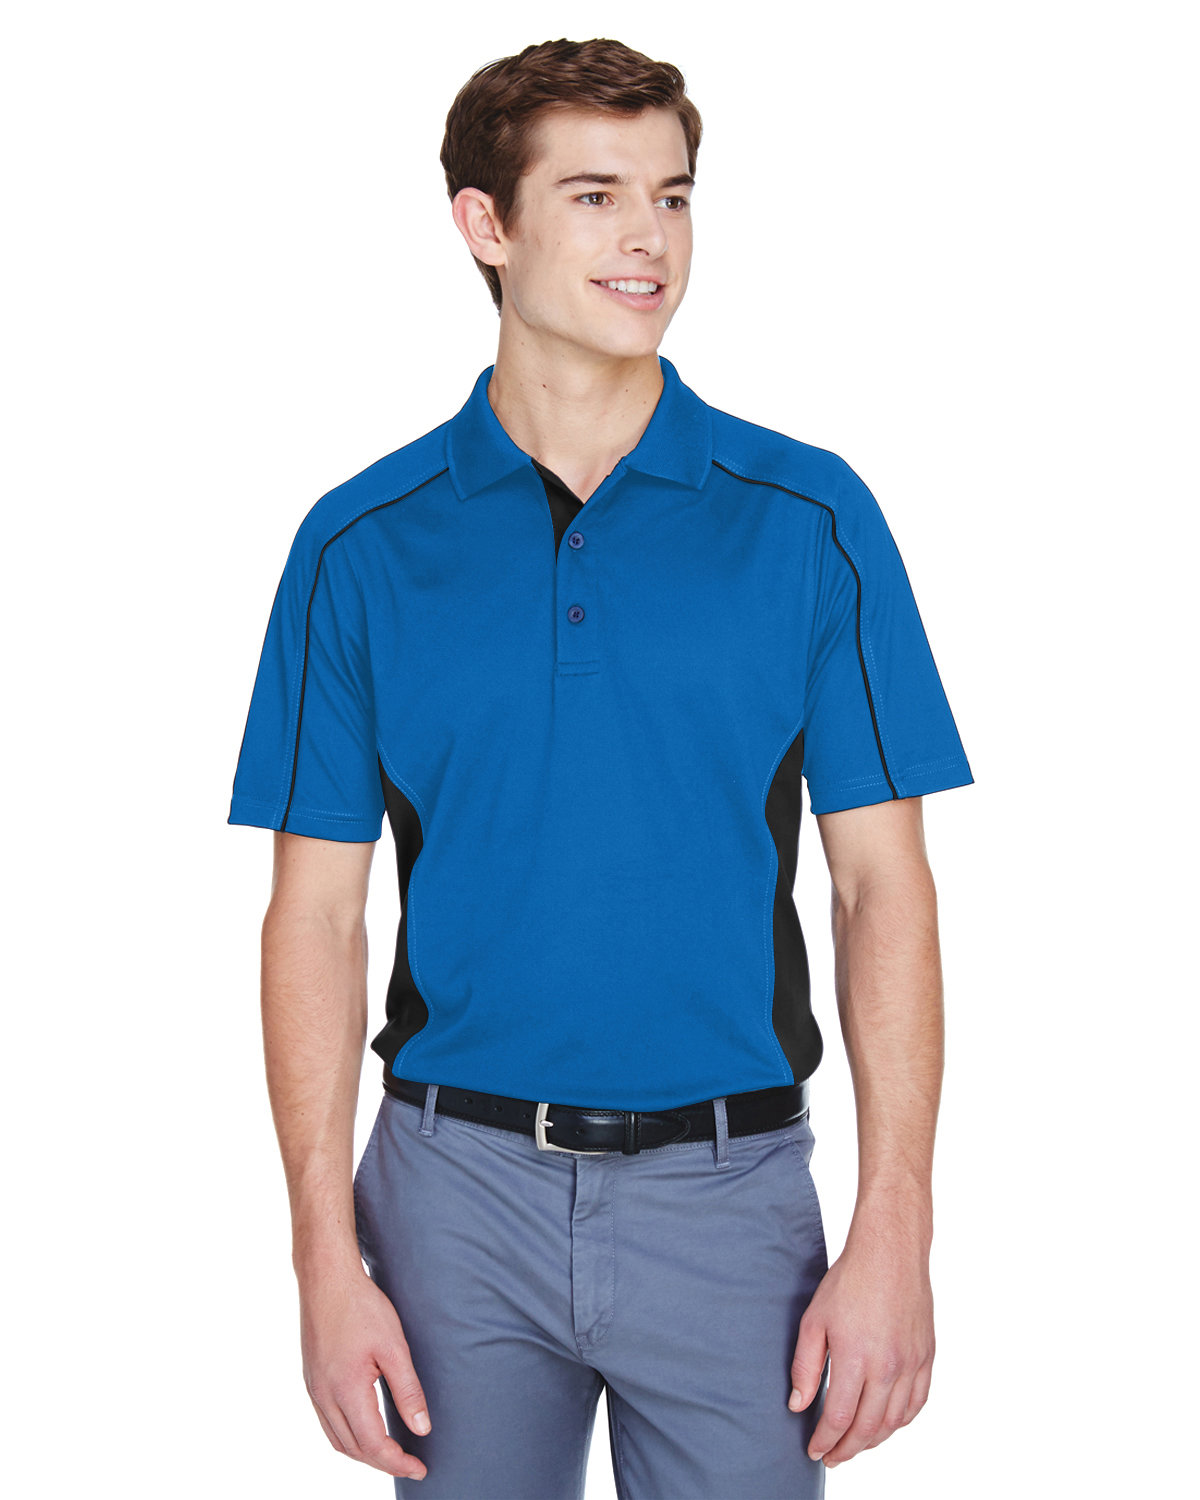 Extreme Men's Tall Eperformance™ Fuse Snag Protection Plus Colorblock Polo TRUE ROYAL/ BLK